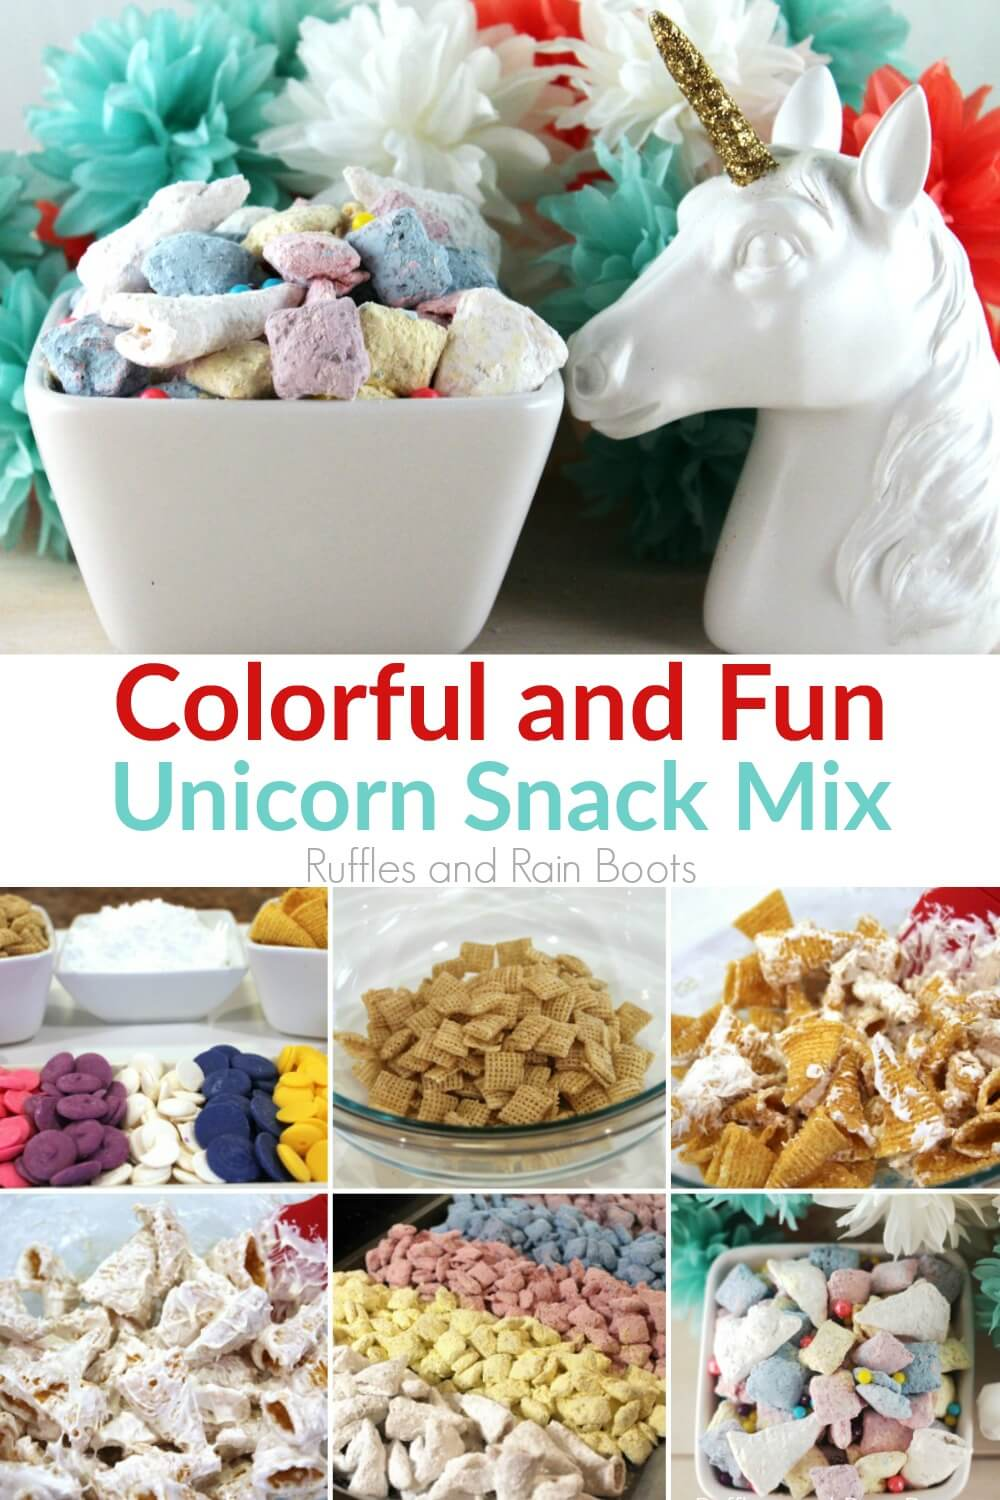 bowl of puppy chow mix with unicorn head and step by step directions for making muddy buddy mix with text Colorful and Fun Unicorn Snack Mix